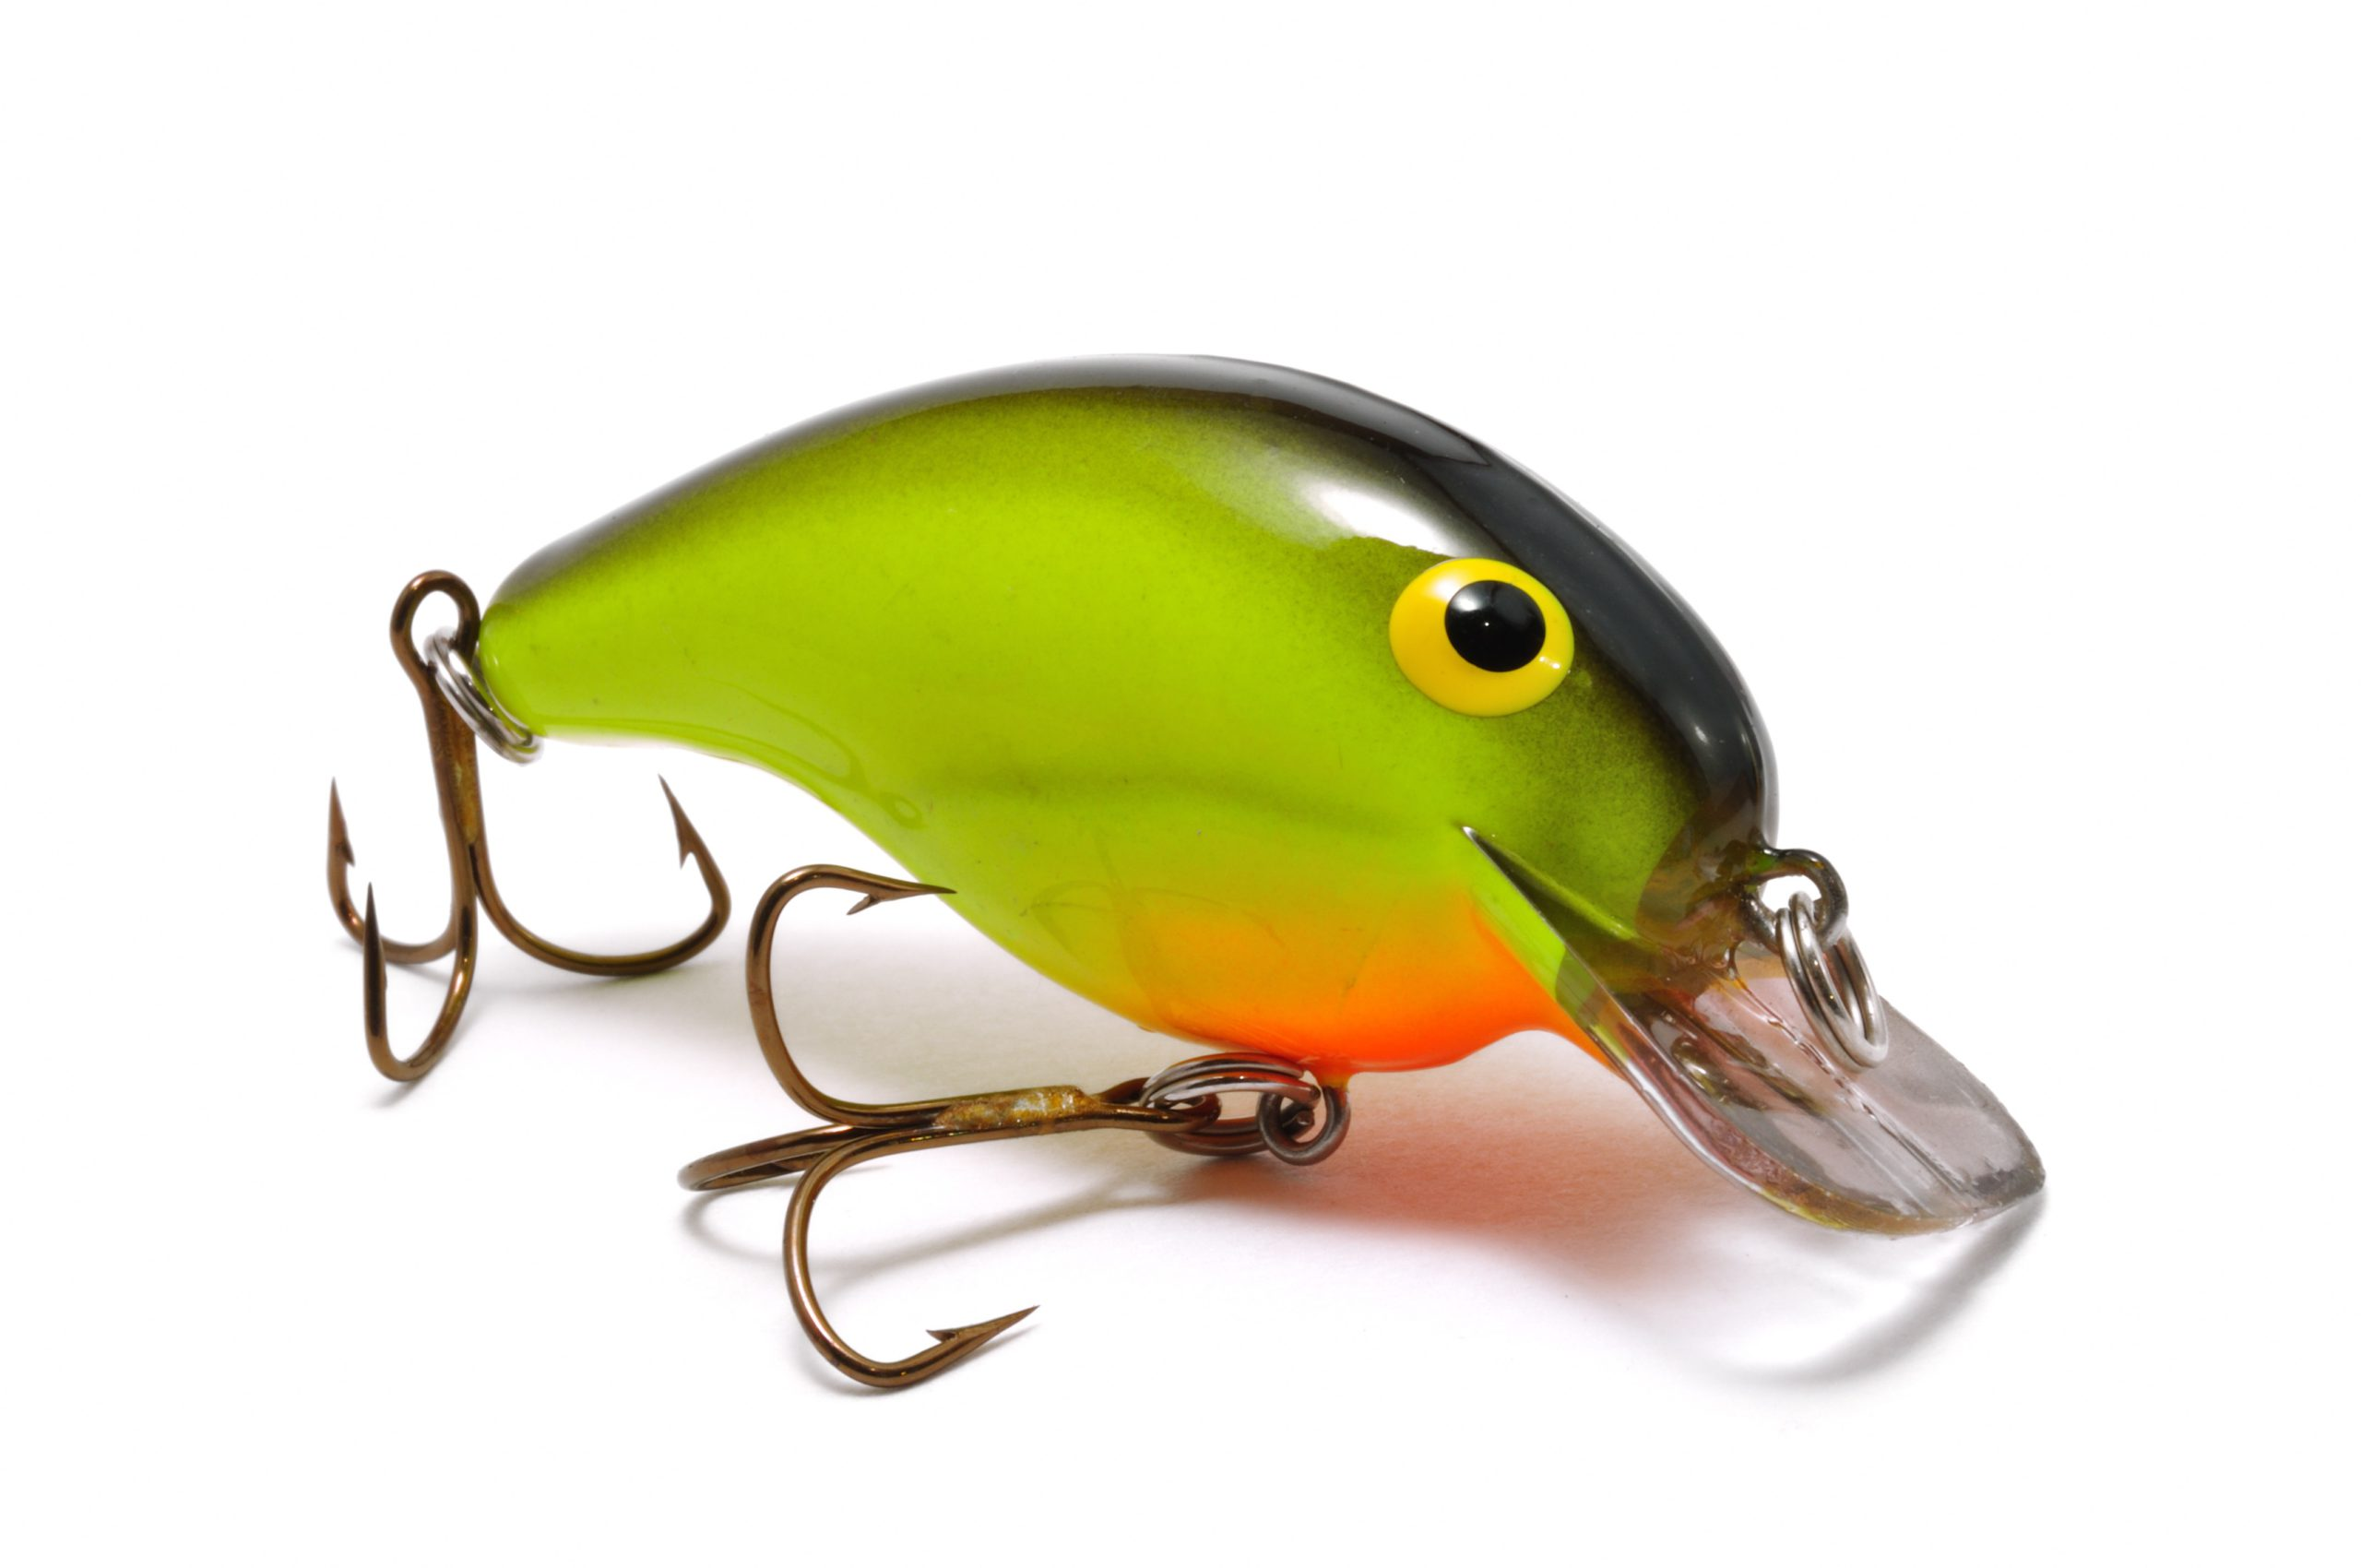 A yellow and black crankbait isolated on a white background.